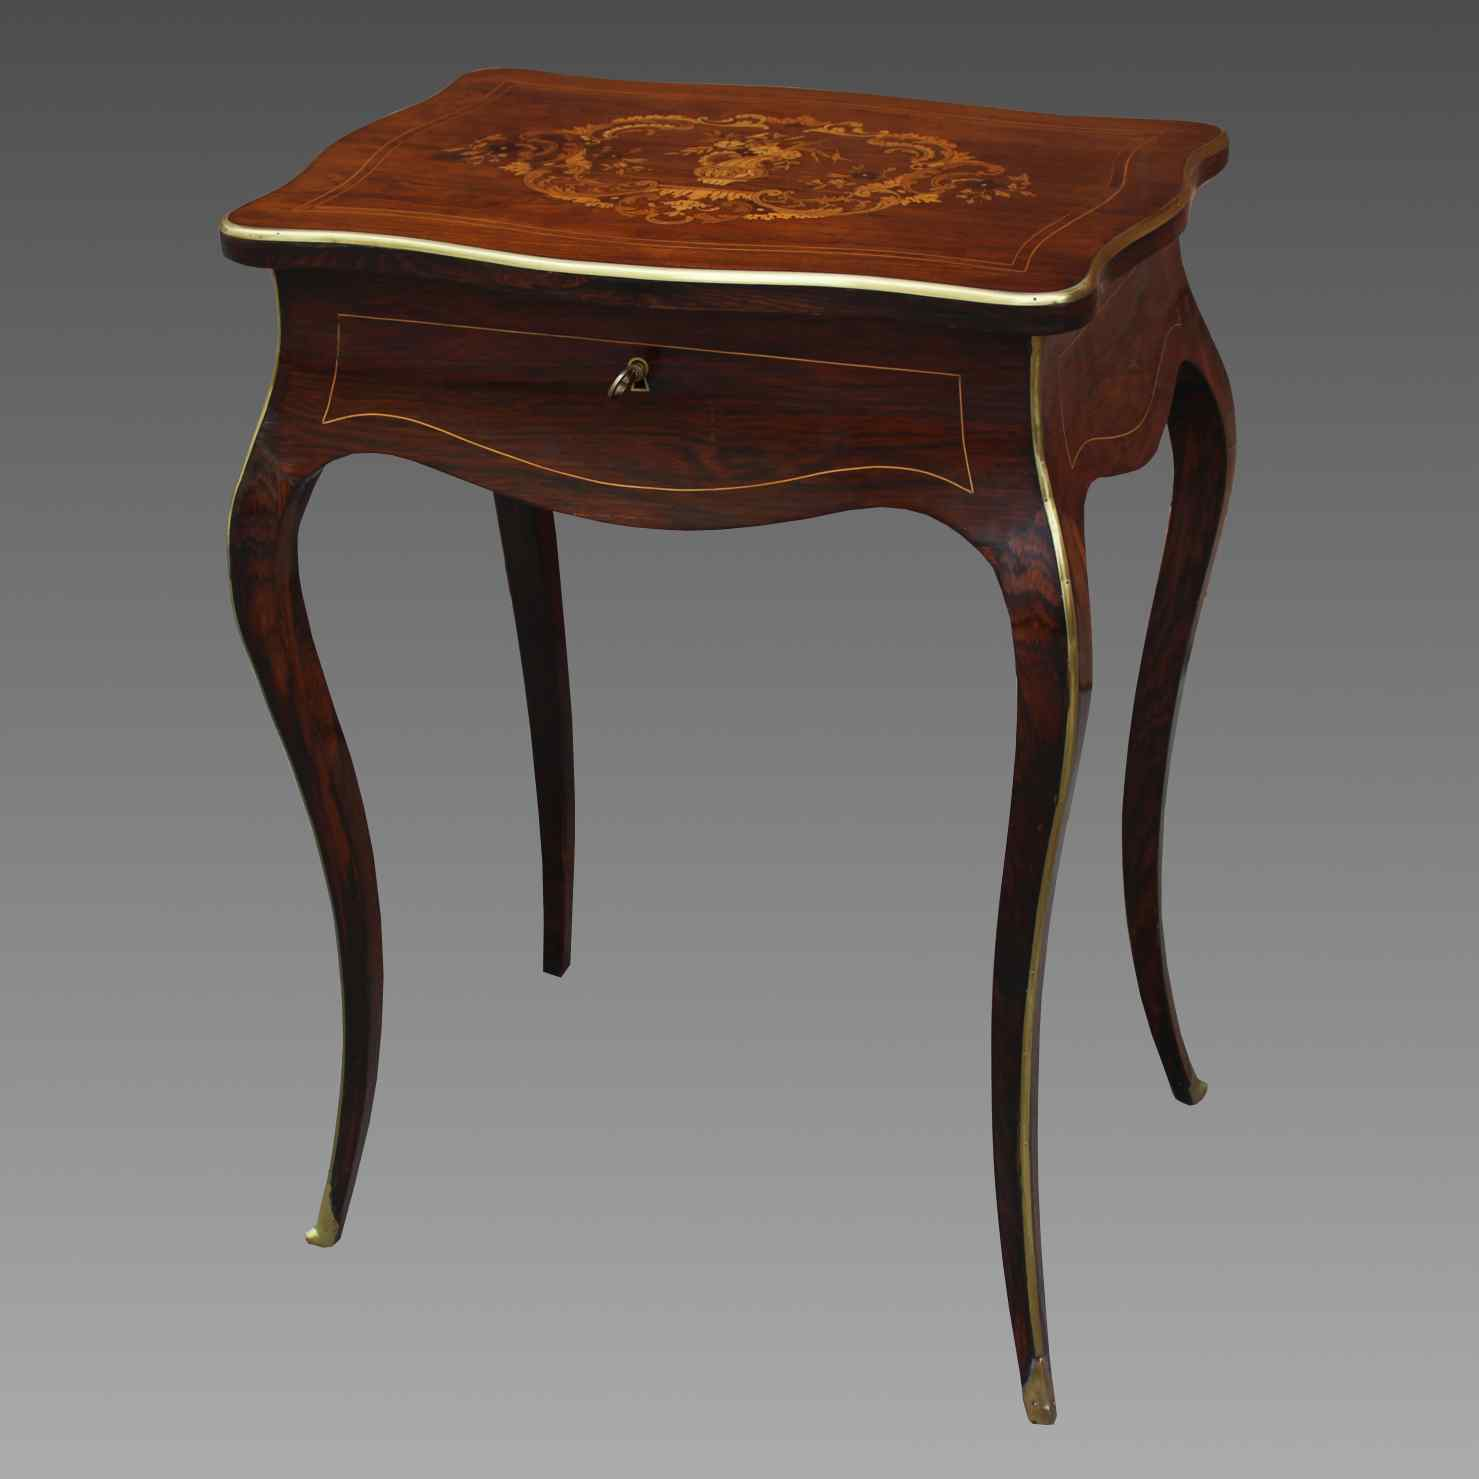 Antique Napoleon III small Table Bedside inlaid-19th